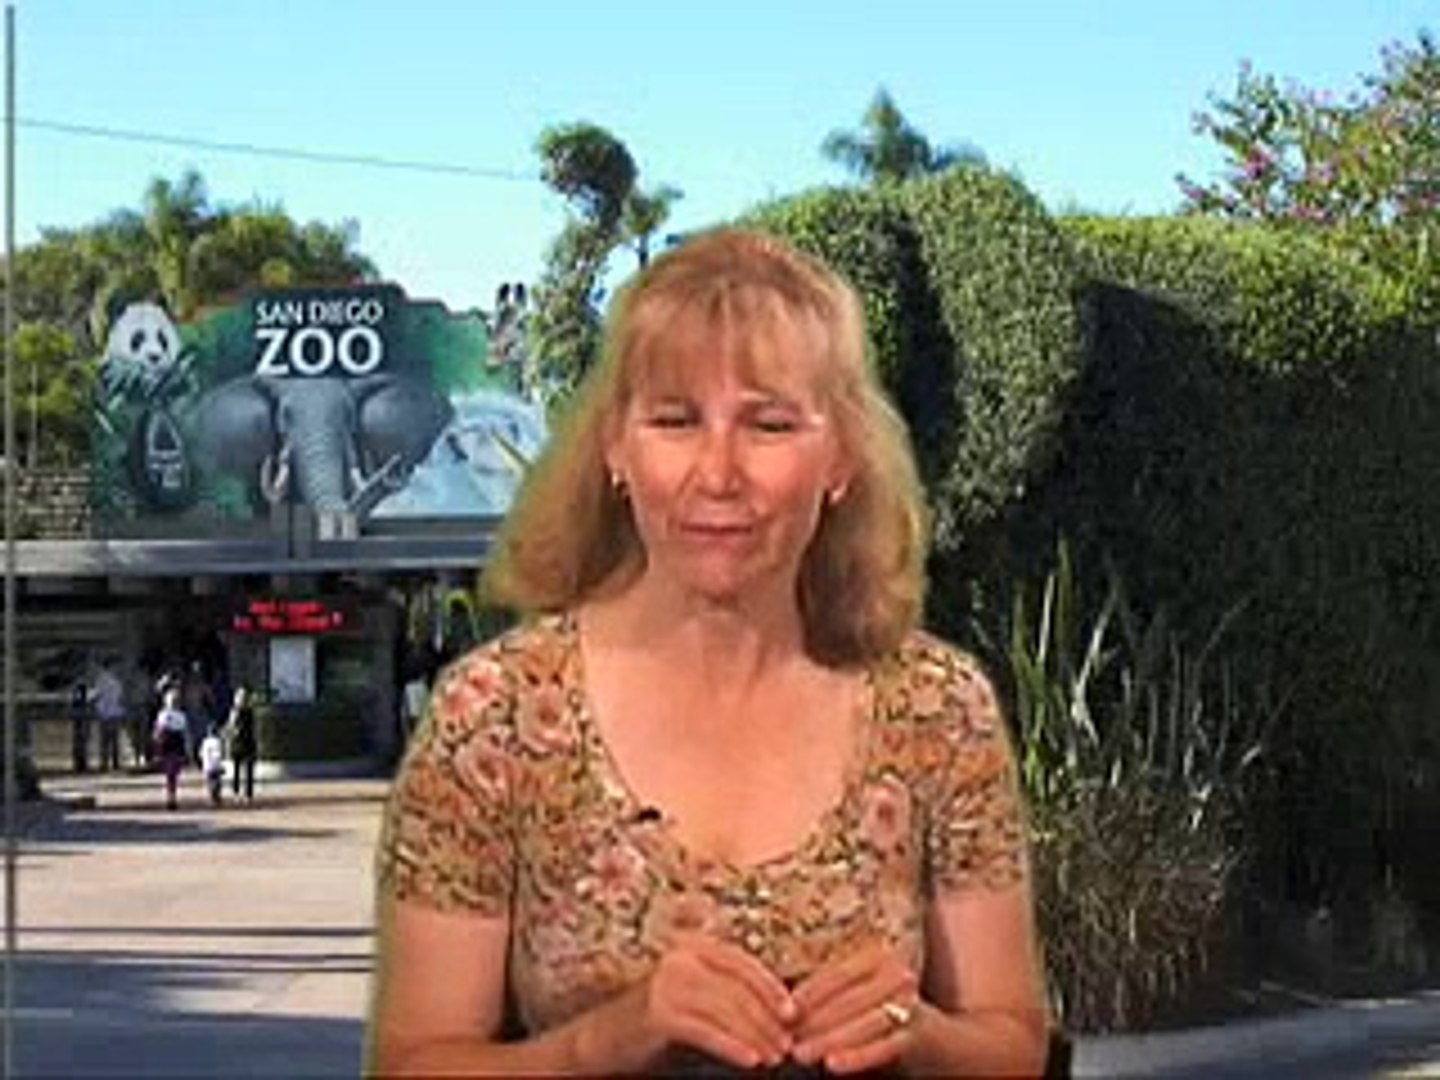 San Diego Zoo at 90: Barless Cages